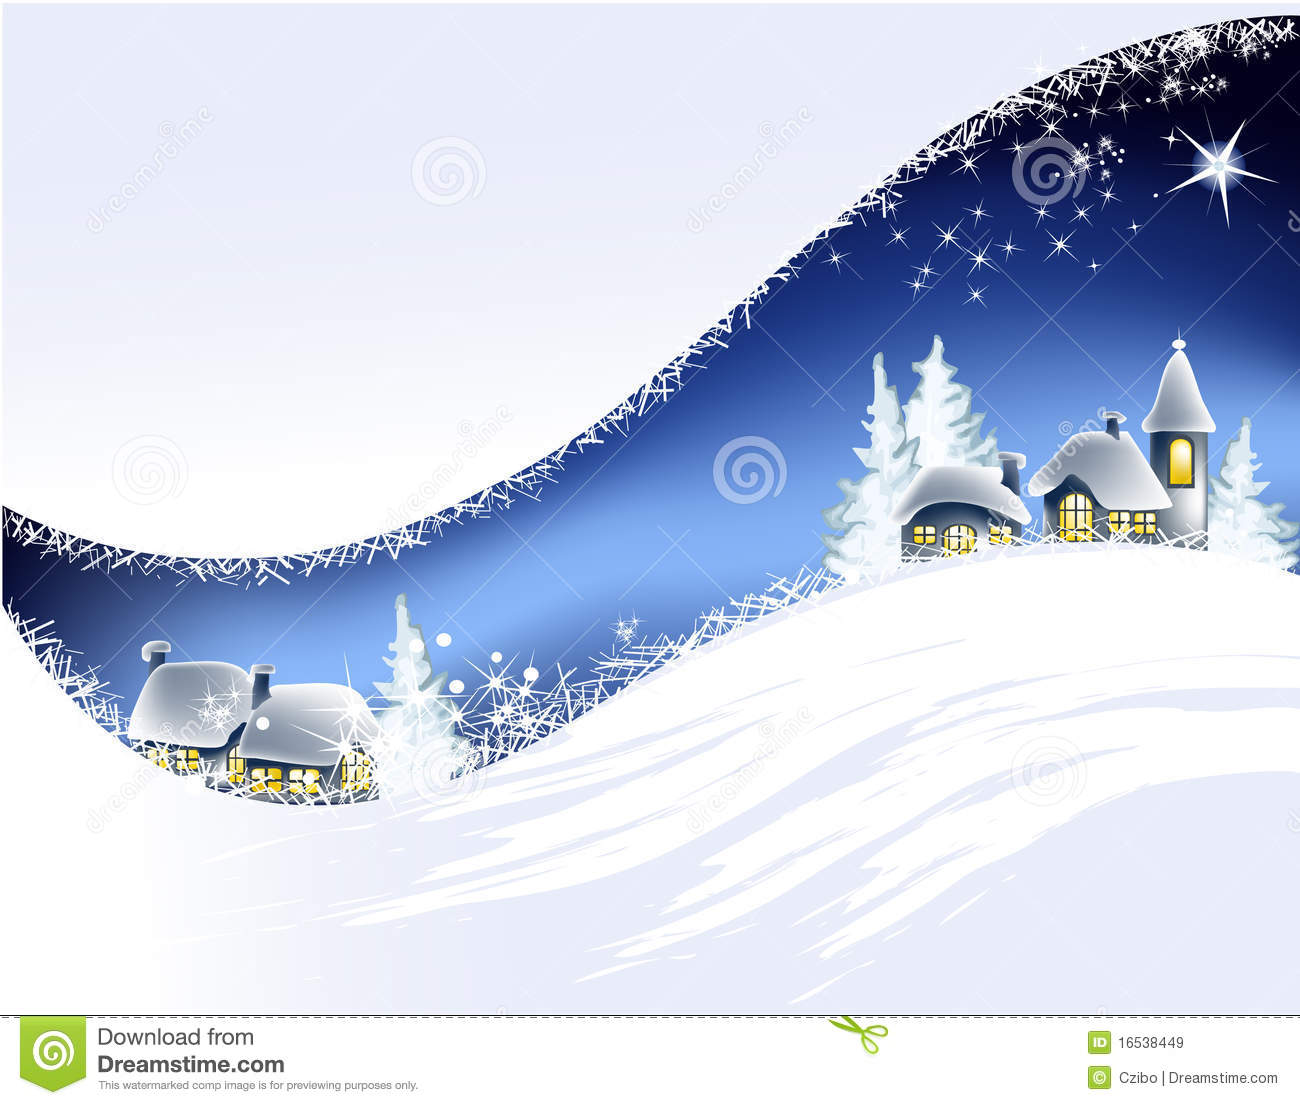 Christmas landscape royalty free stock images image for Christmas landscape images